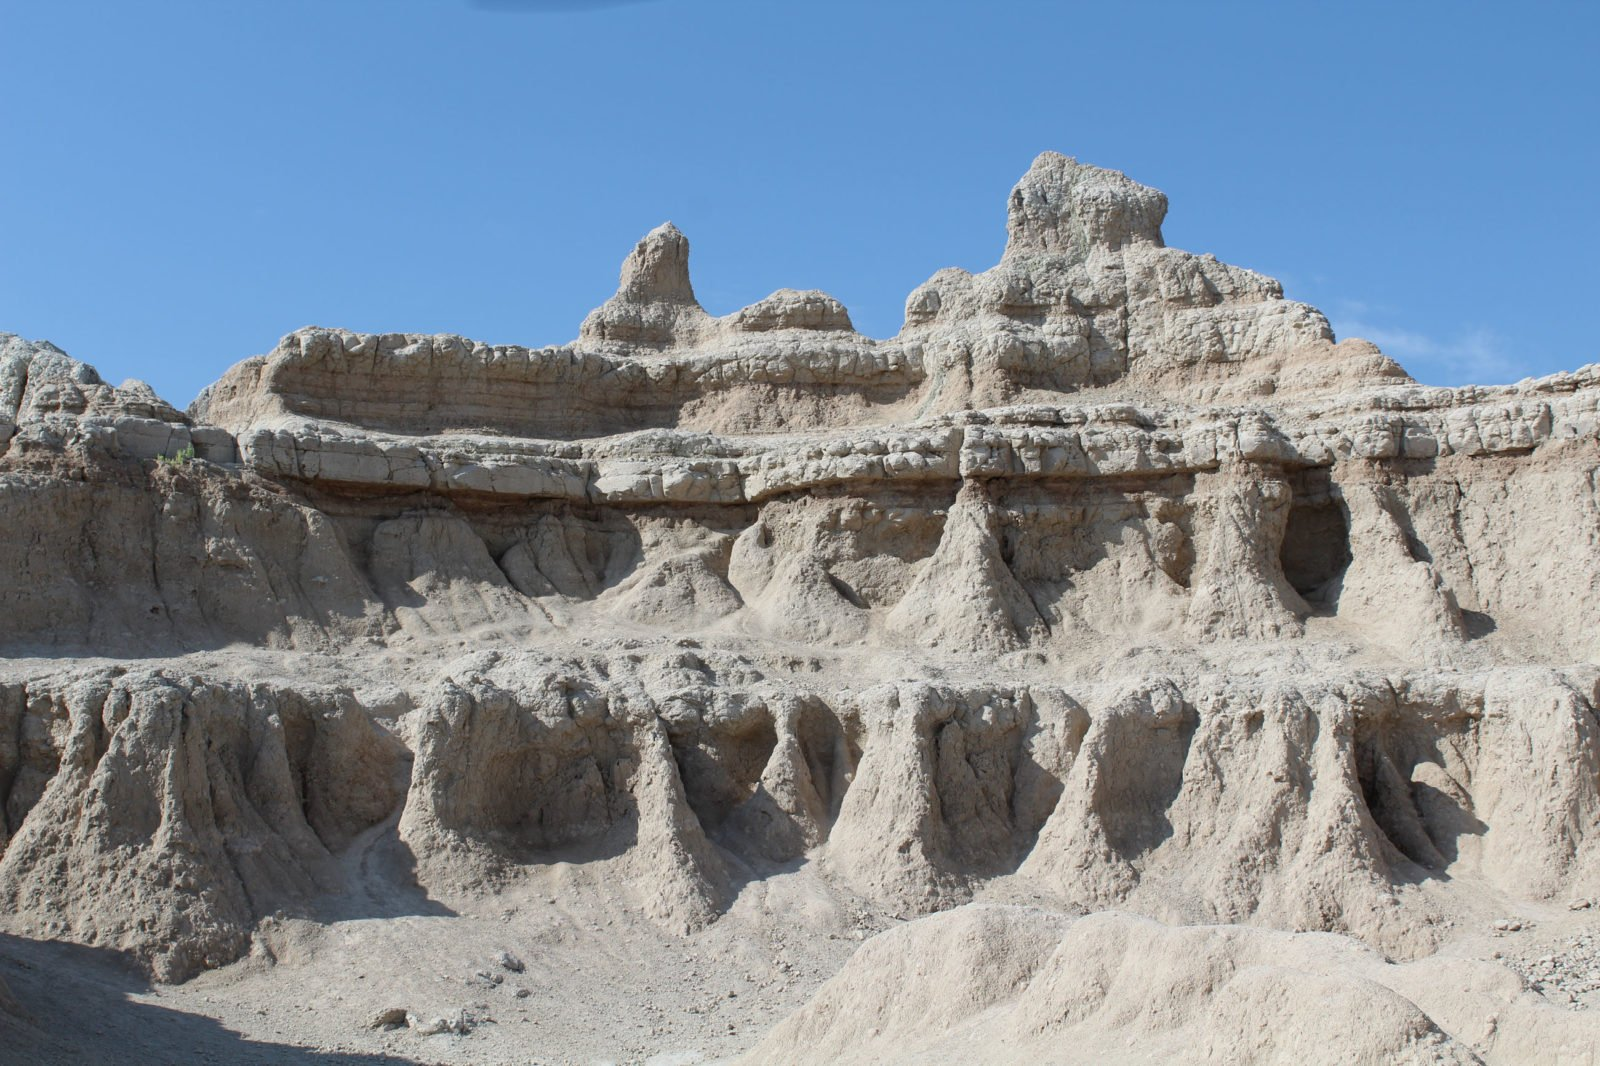 Eroded tower of sandstone in Badlands National Park